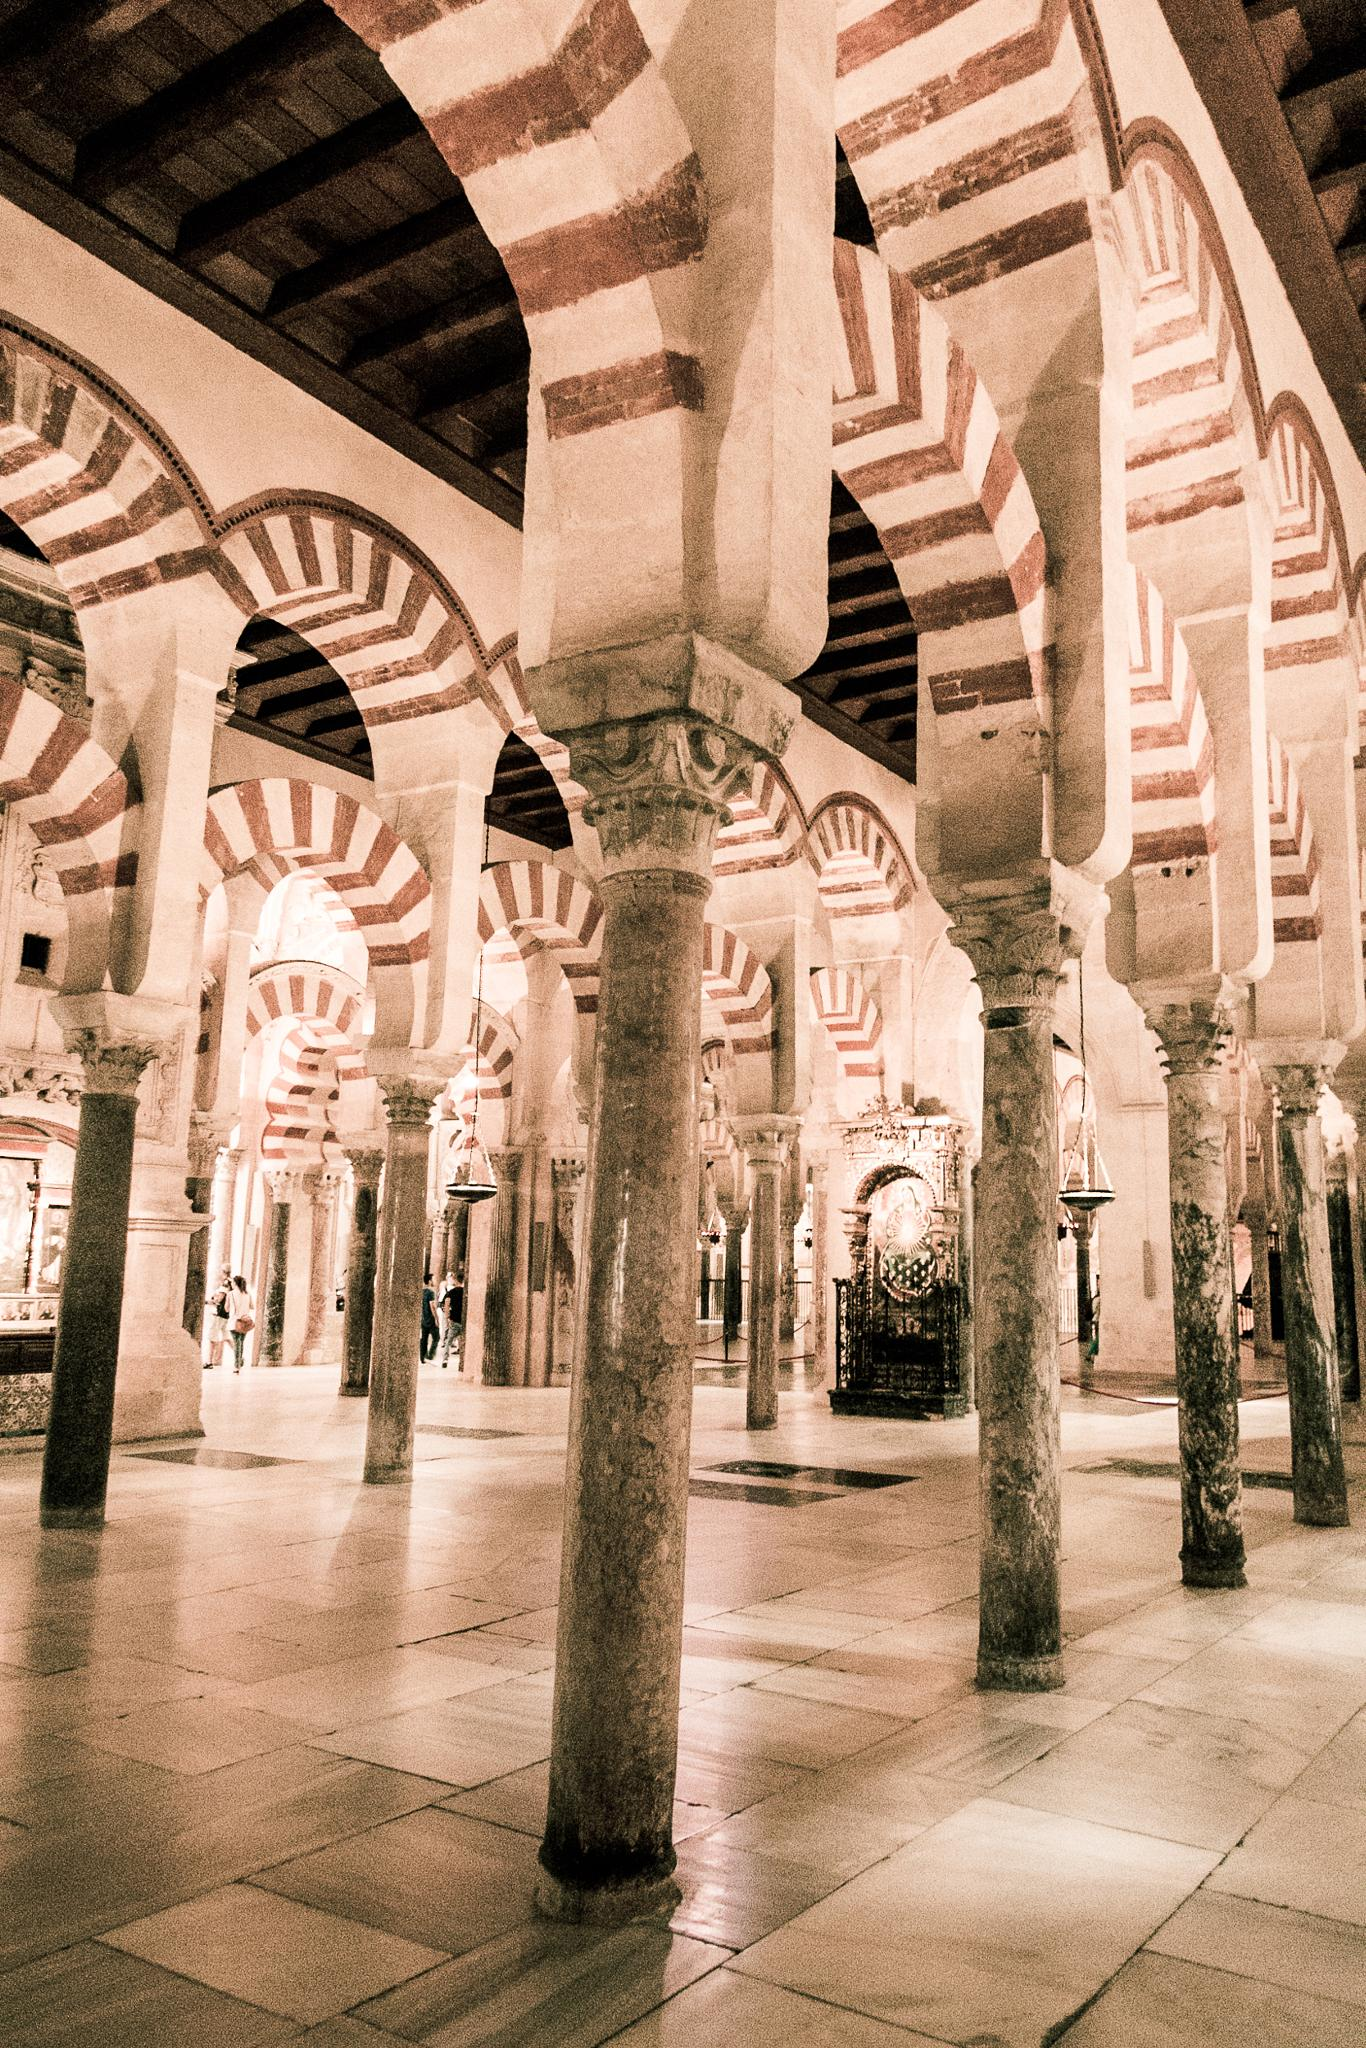 La Mezquita -Arches by stephenhops